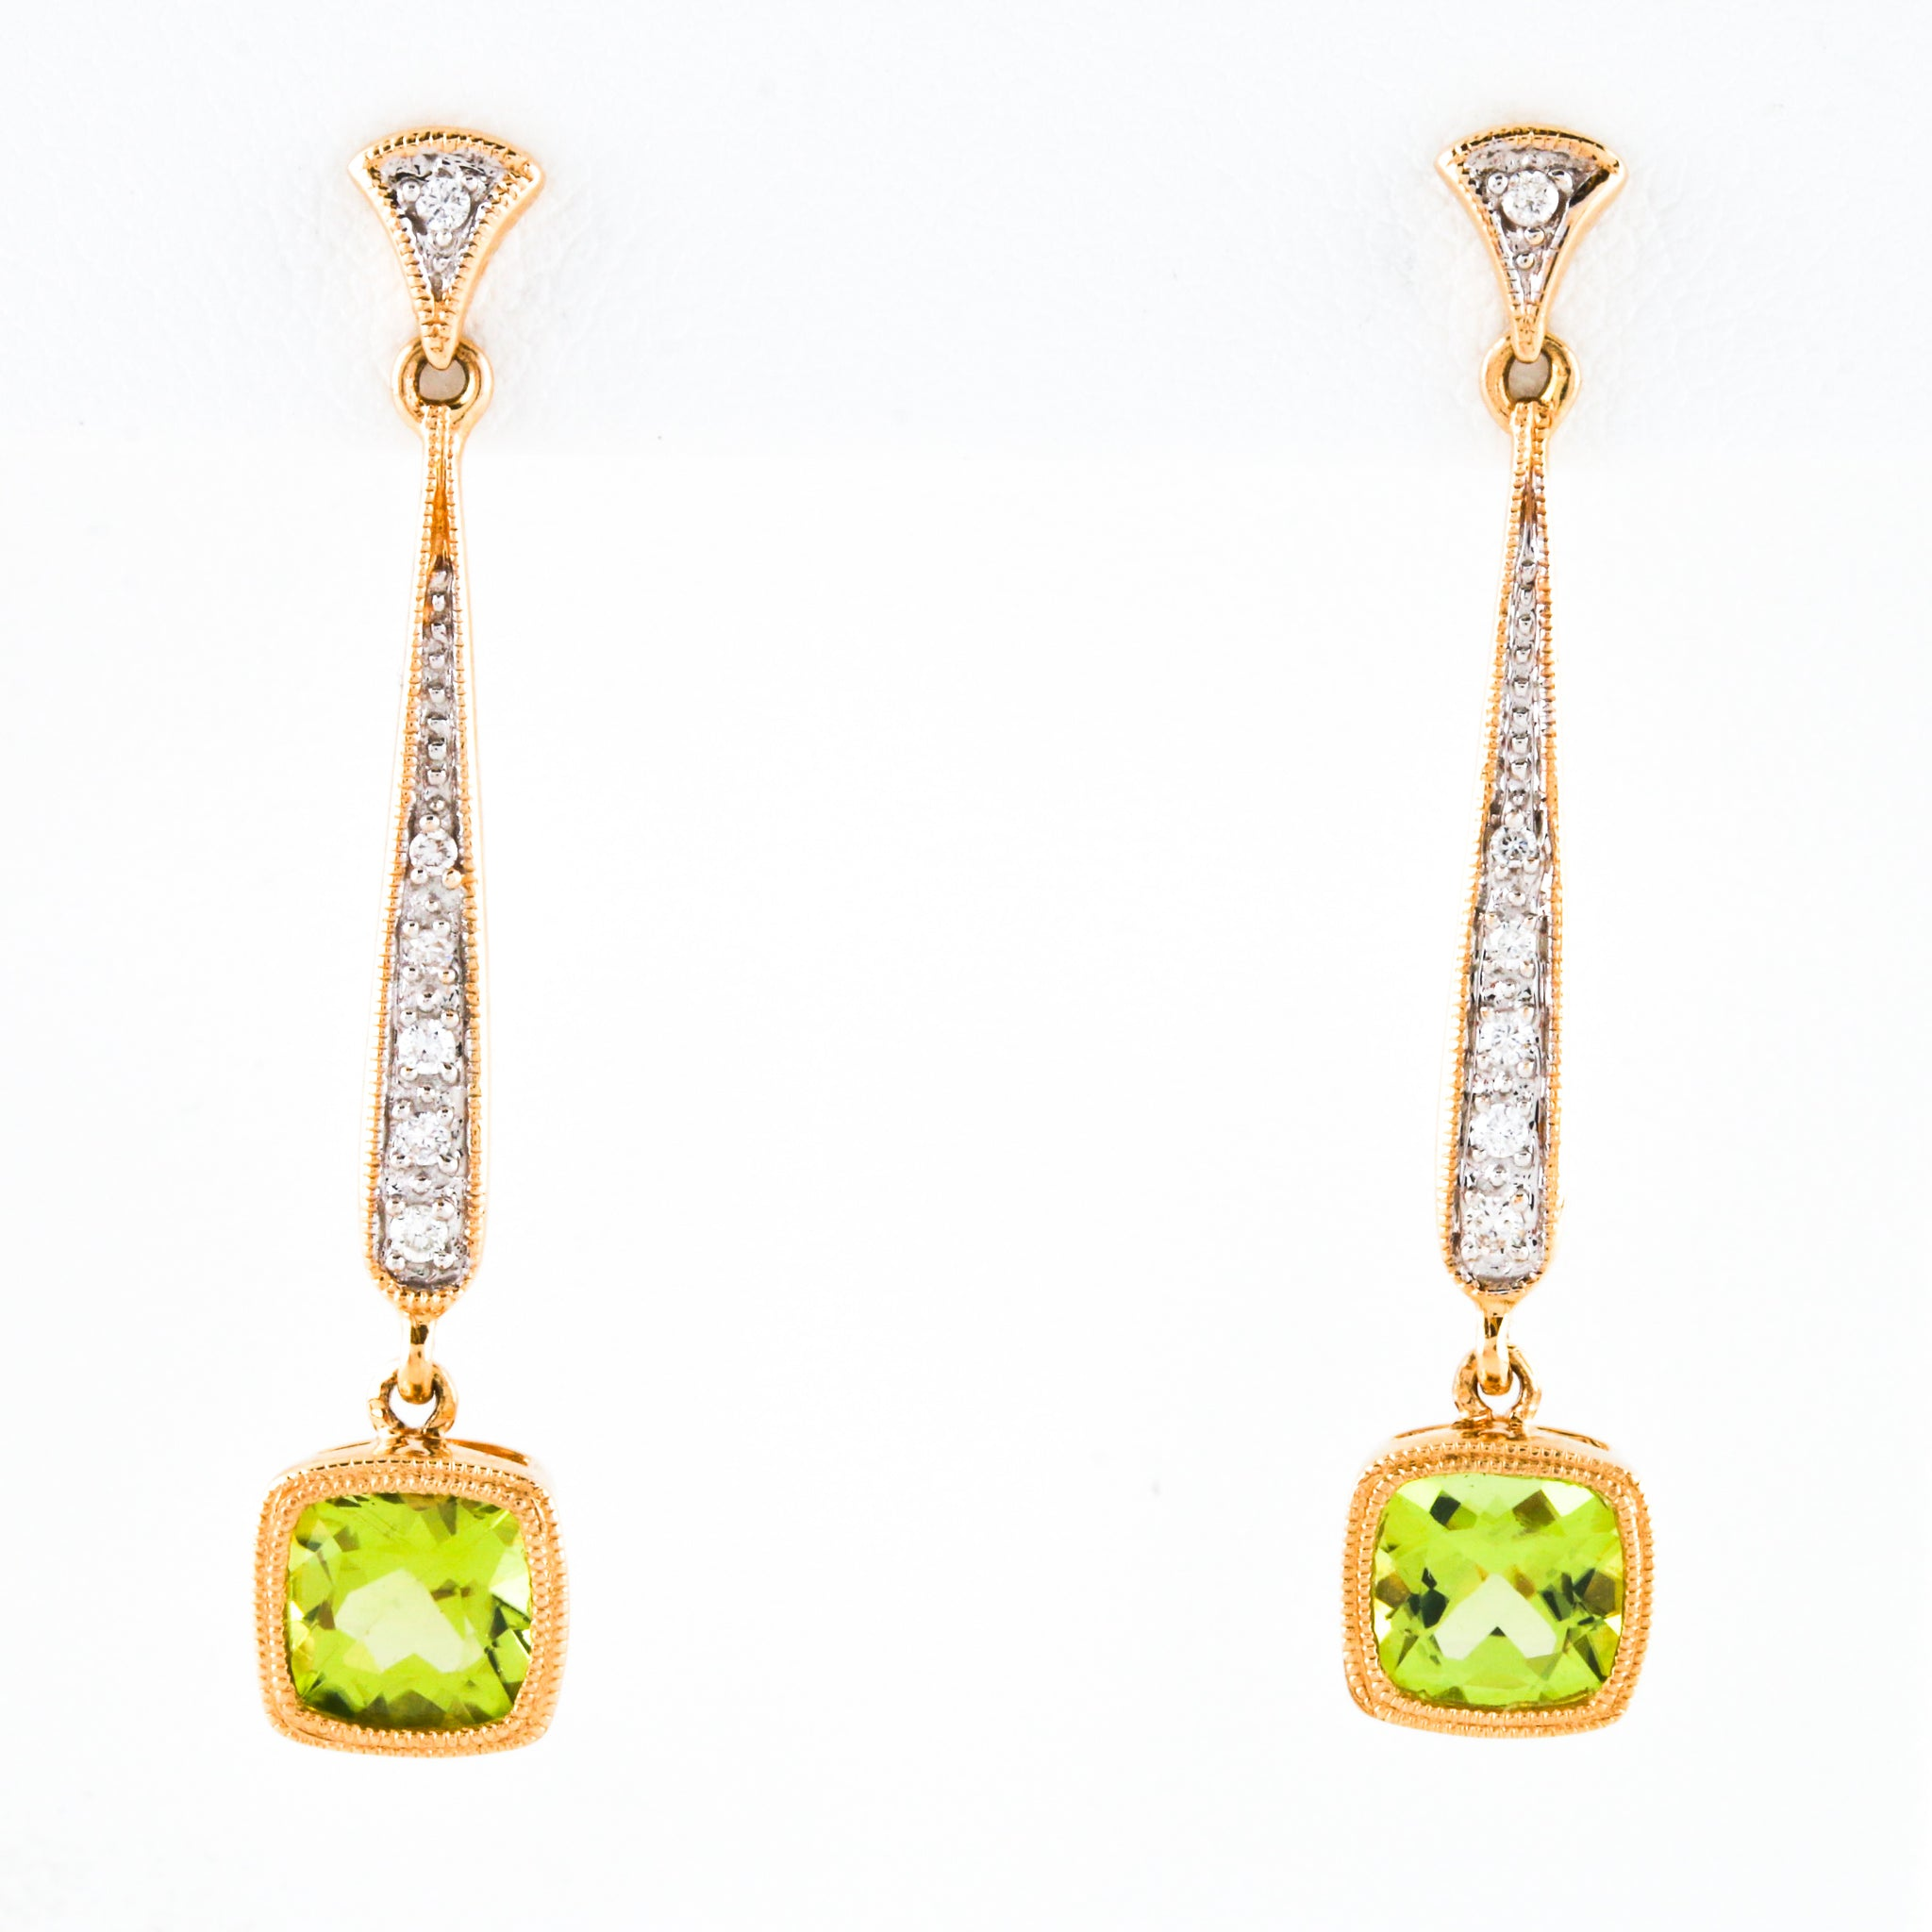 *SOLD* Peridot and Diamonds in Yellow Gold Earrings - Sindur